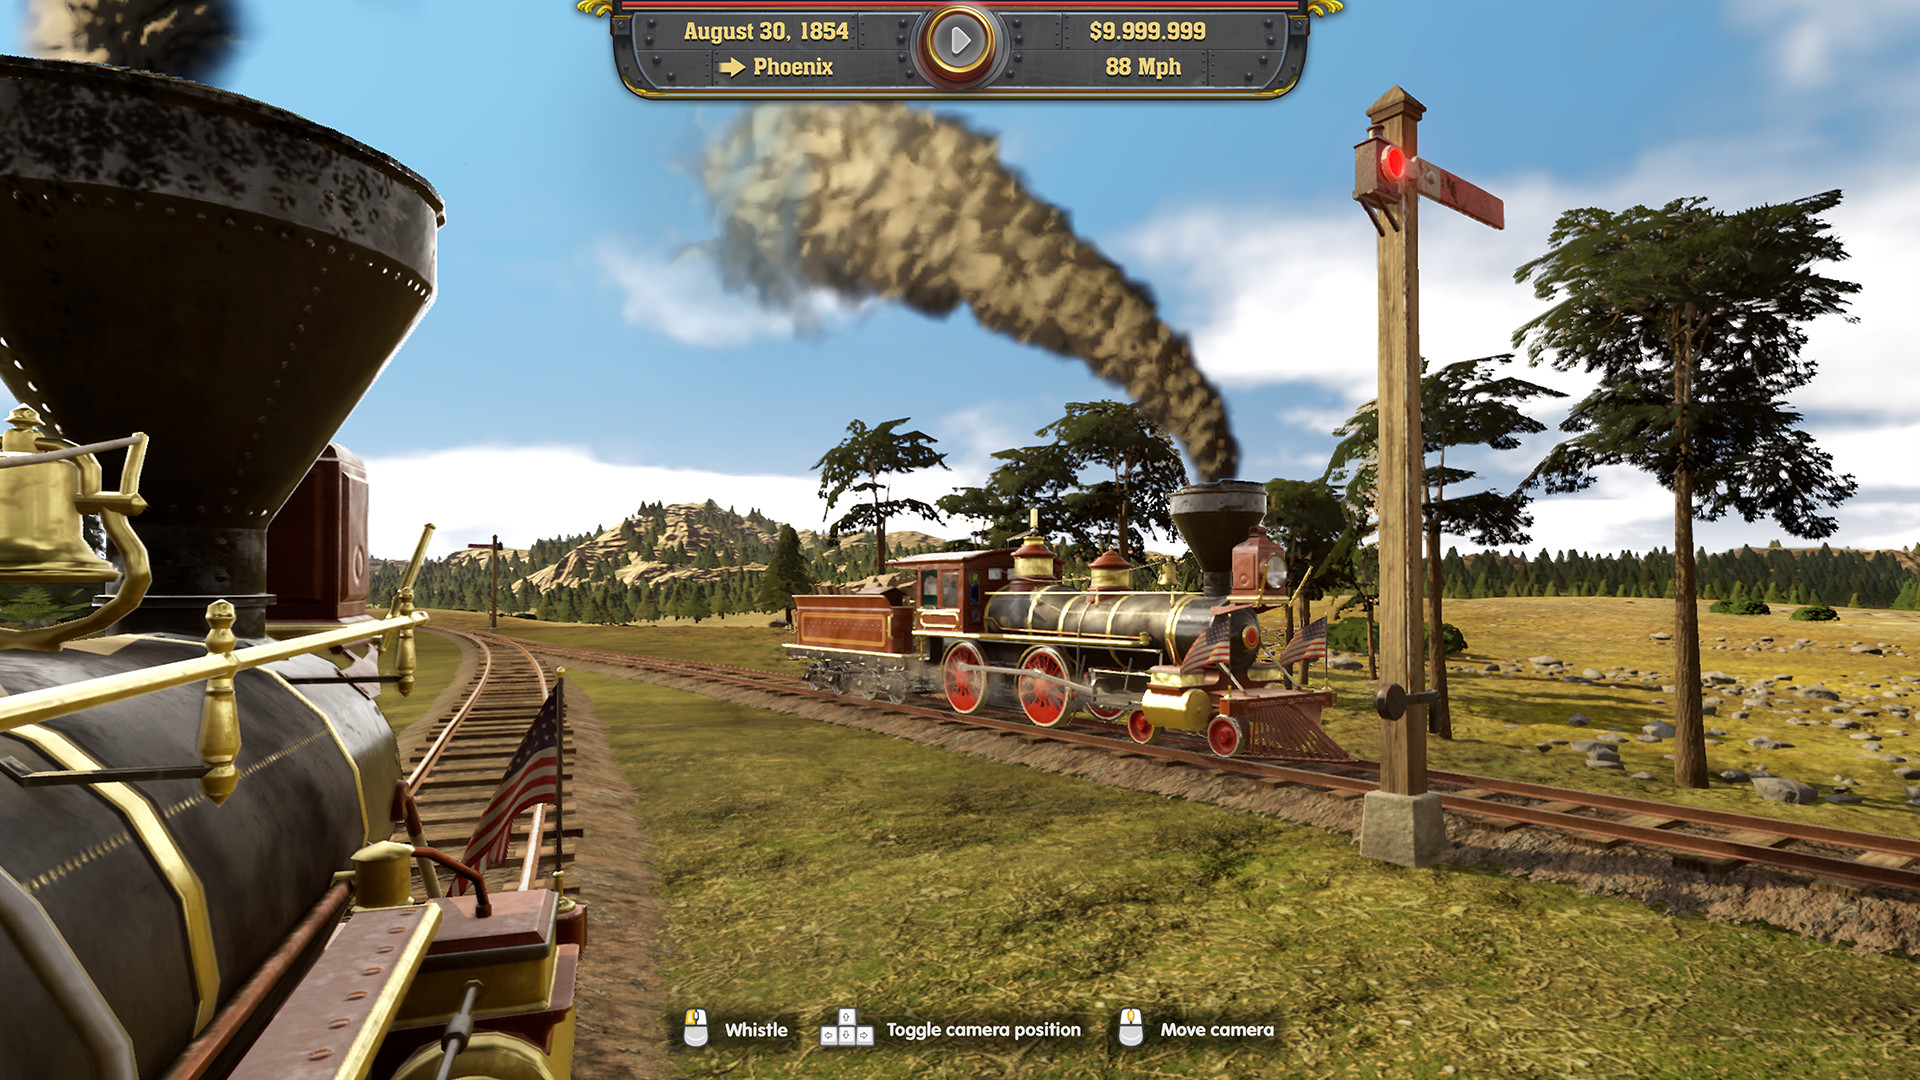 A train heads off, smoke billowing out of the top of the car, as it rides toward adventure.